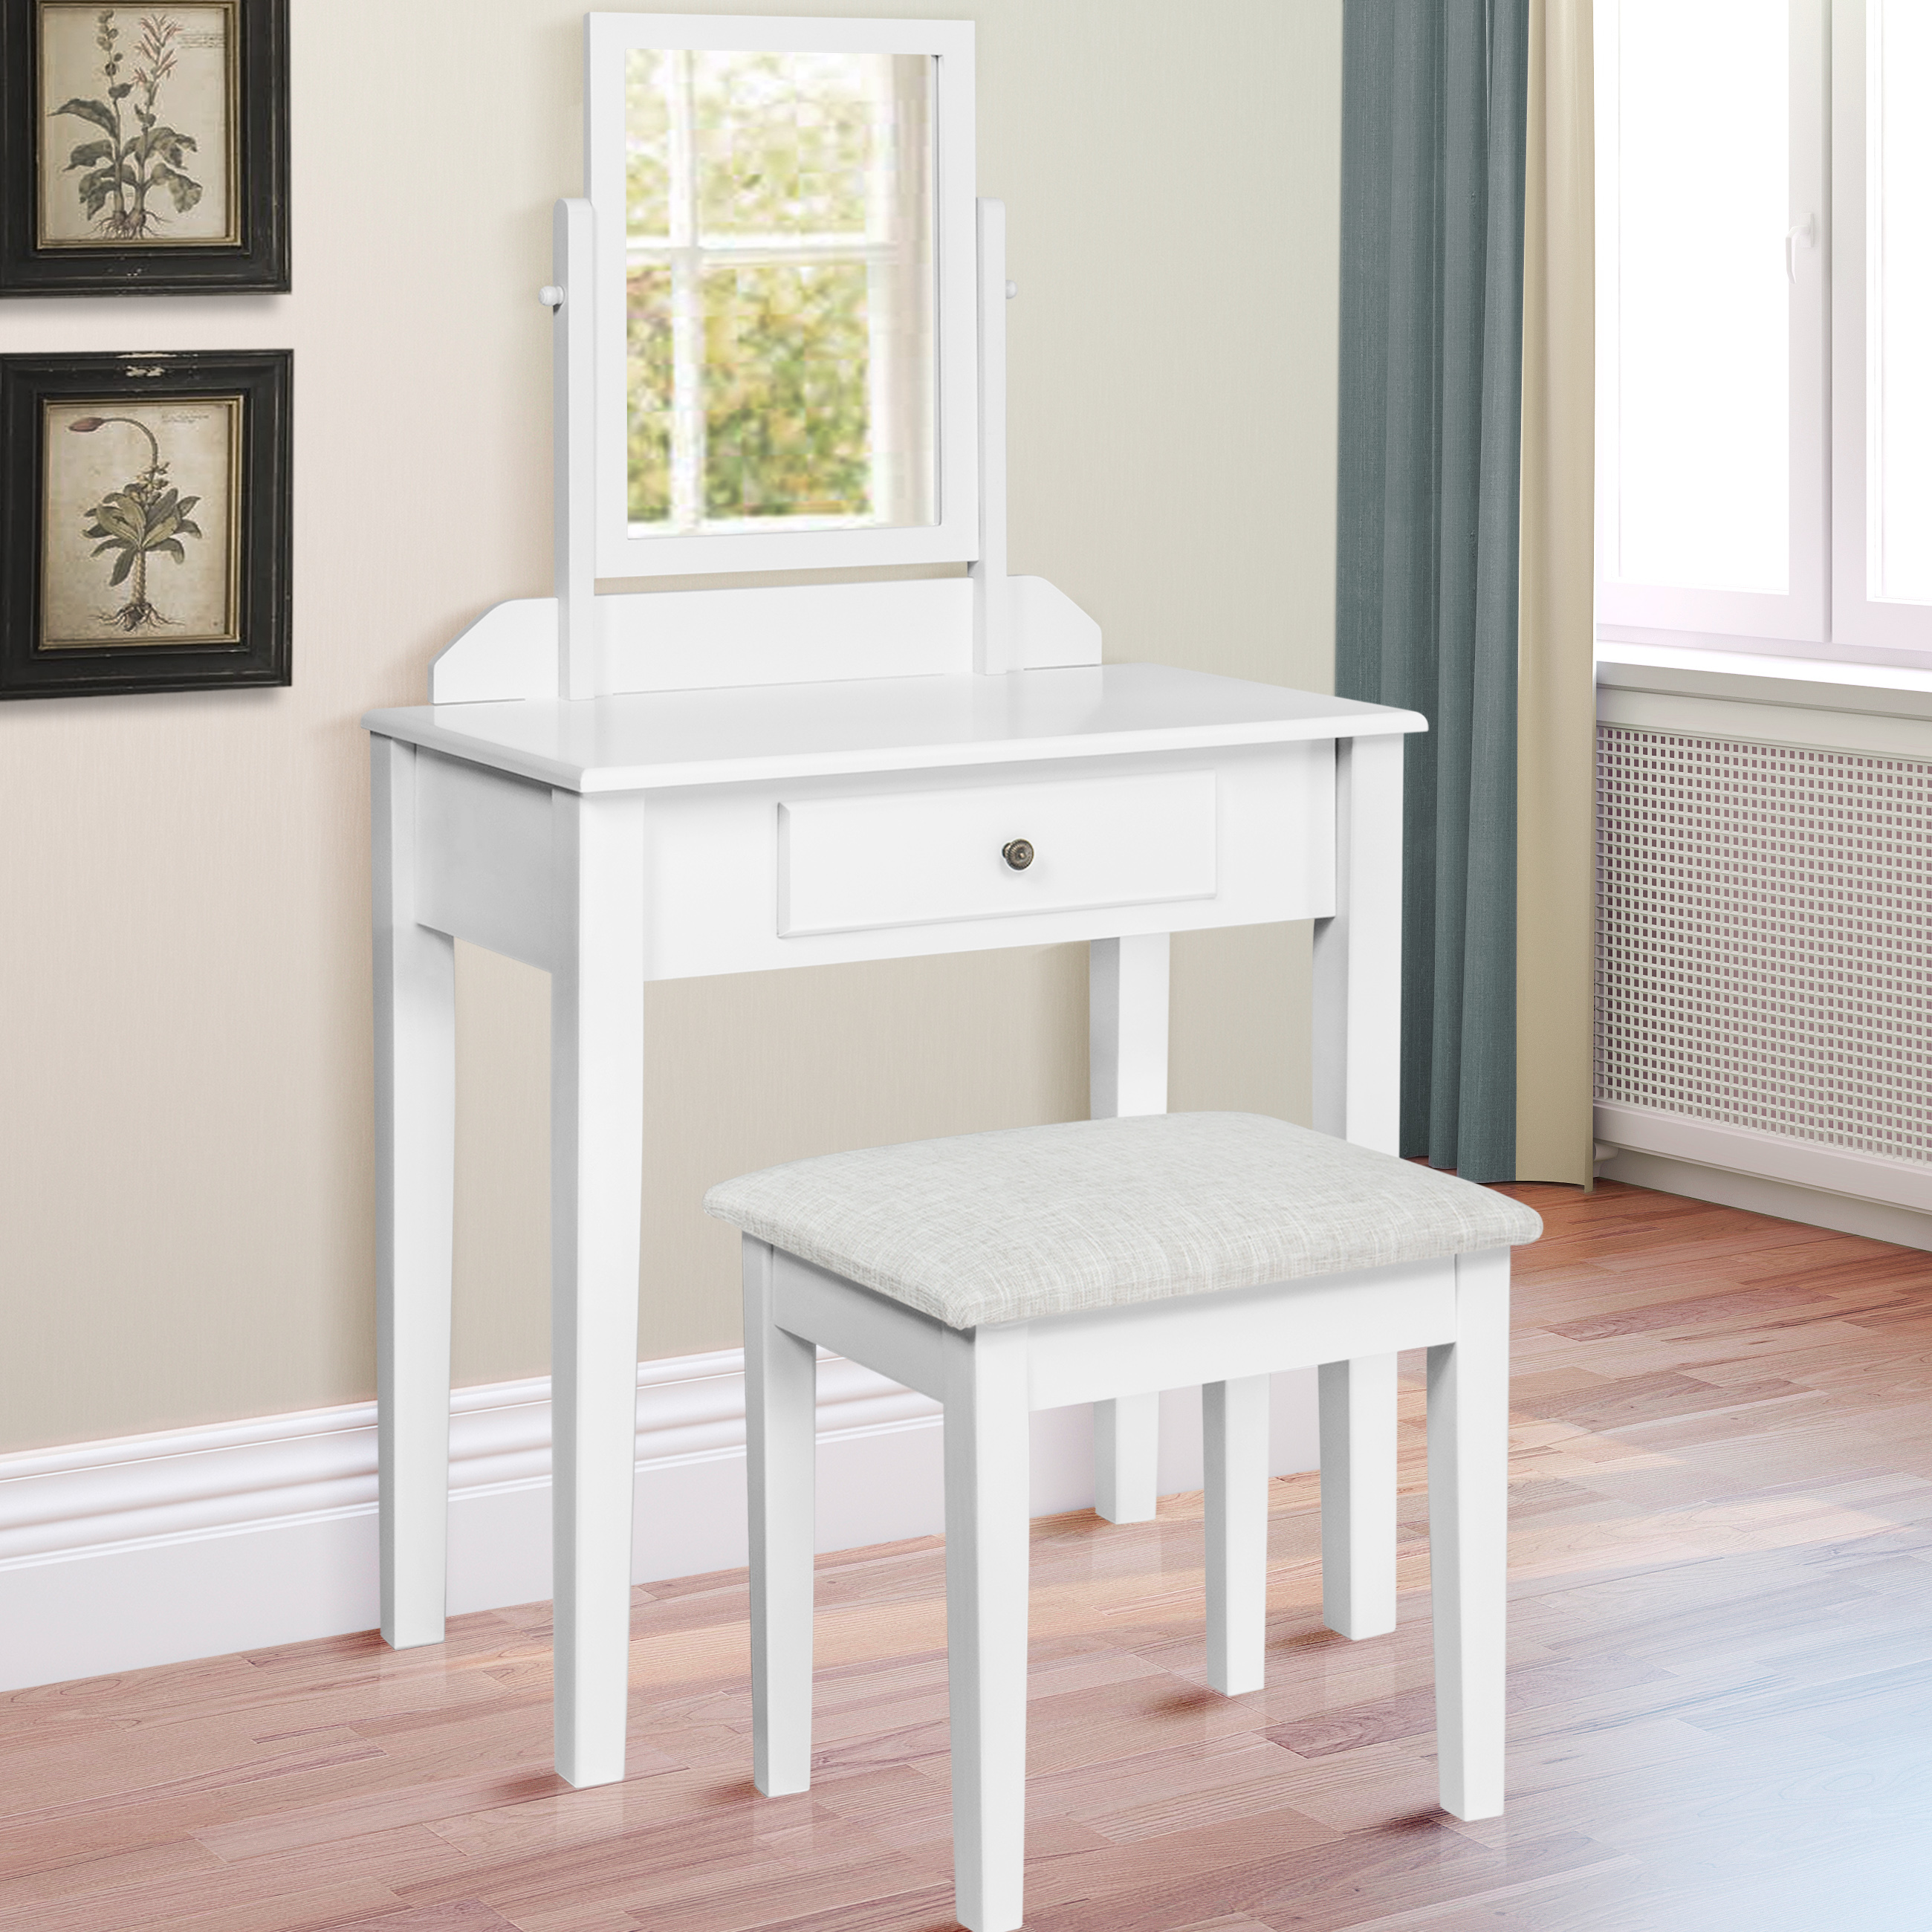 Best Choice Products Bathroom Vanity Table Set W  Stool Hair Dressing Organizer- White by